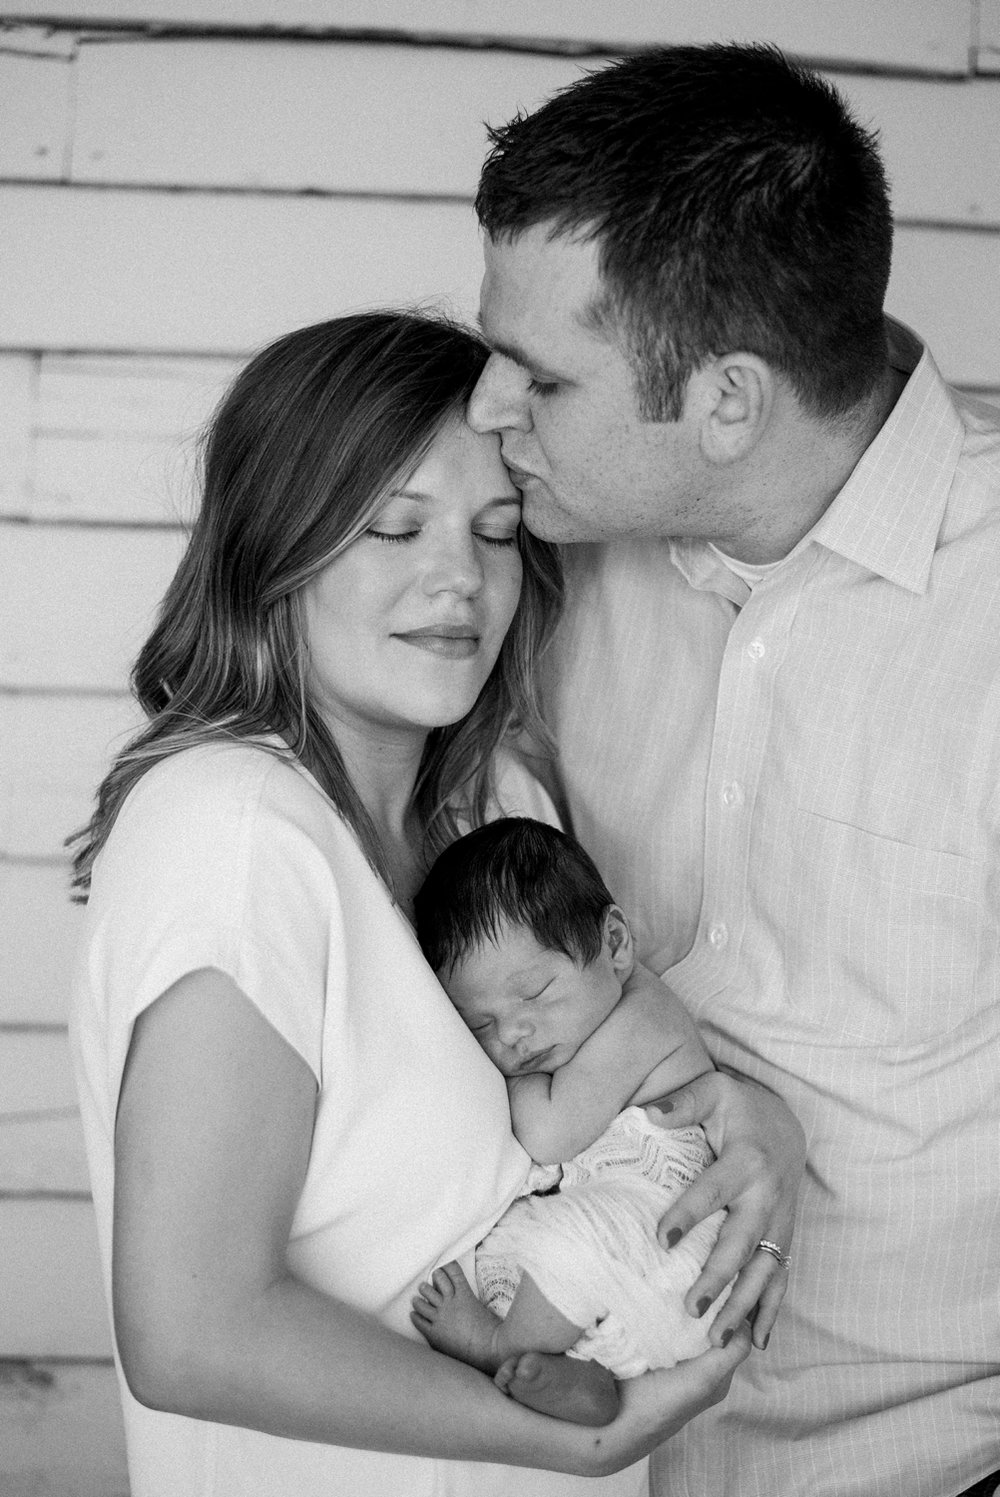 portland-newborn-photography-boy-shelley-marie-photo-18